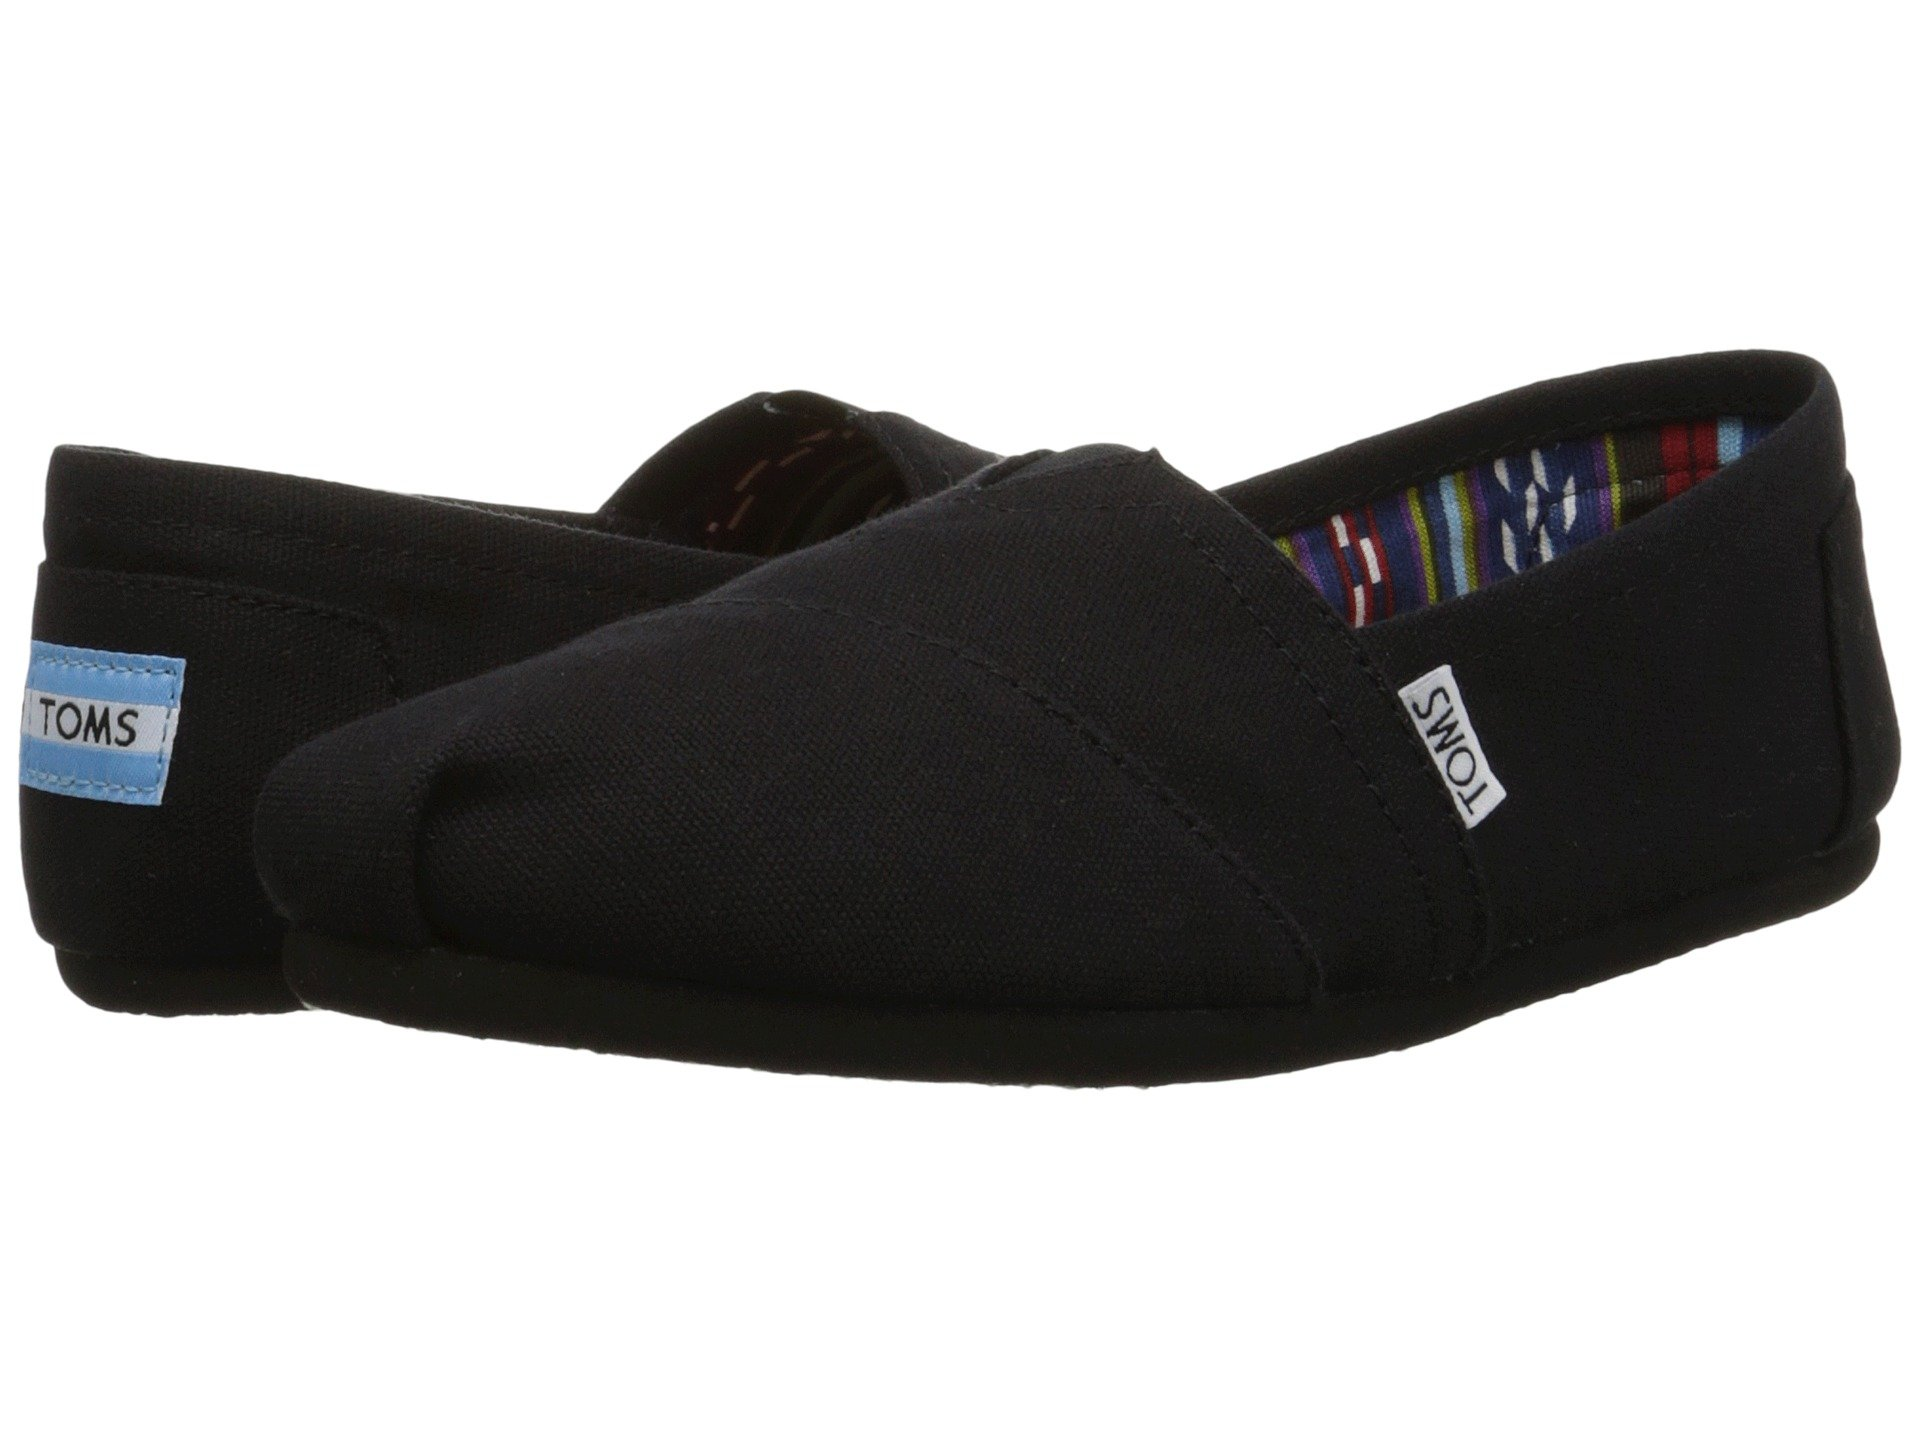 TOMS Women's Canvas Slip-On,Black Black,8.5 M by TOMS